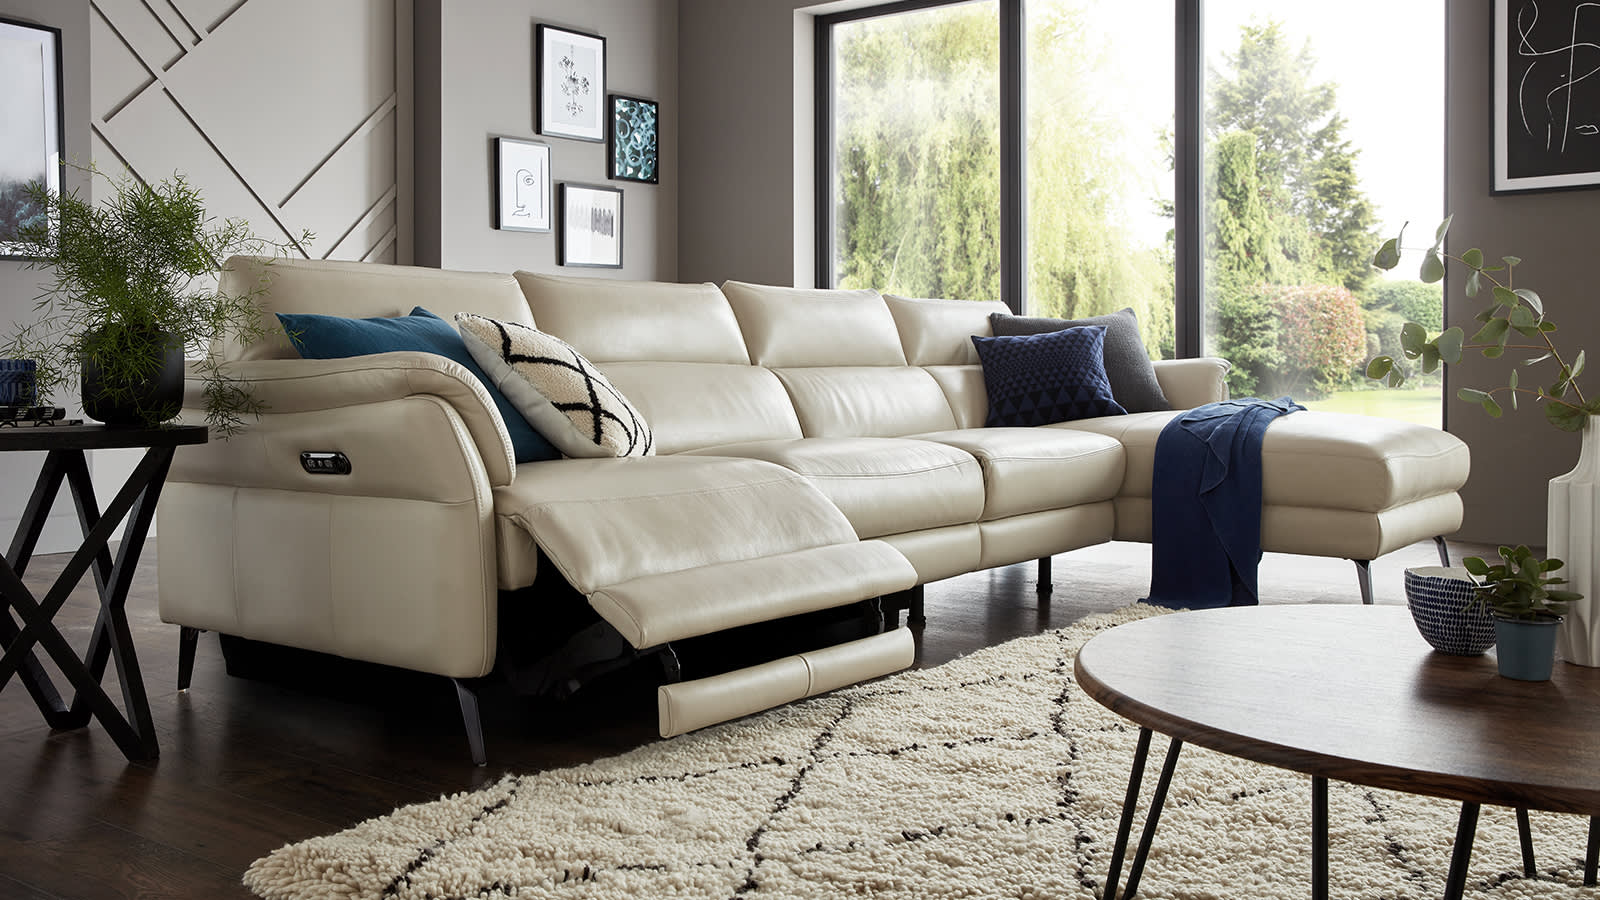 Miraculous Recliner Sofas Leather Fabric And Corner Sofology Bralicious Painted Fabric Chair Ideas Braliciousco